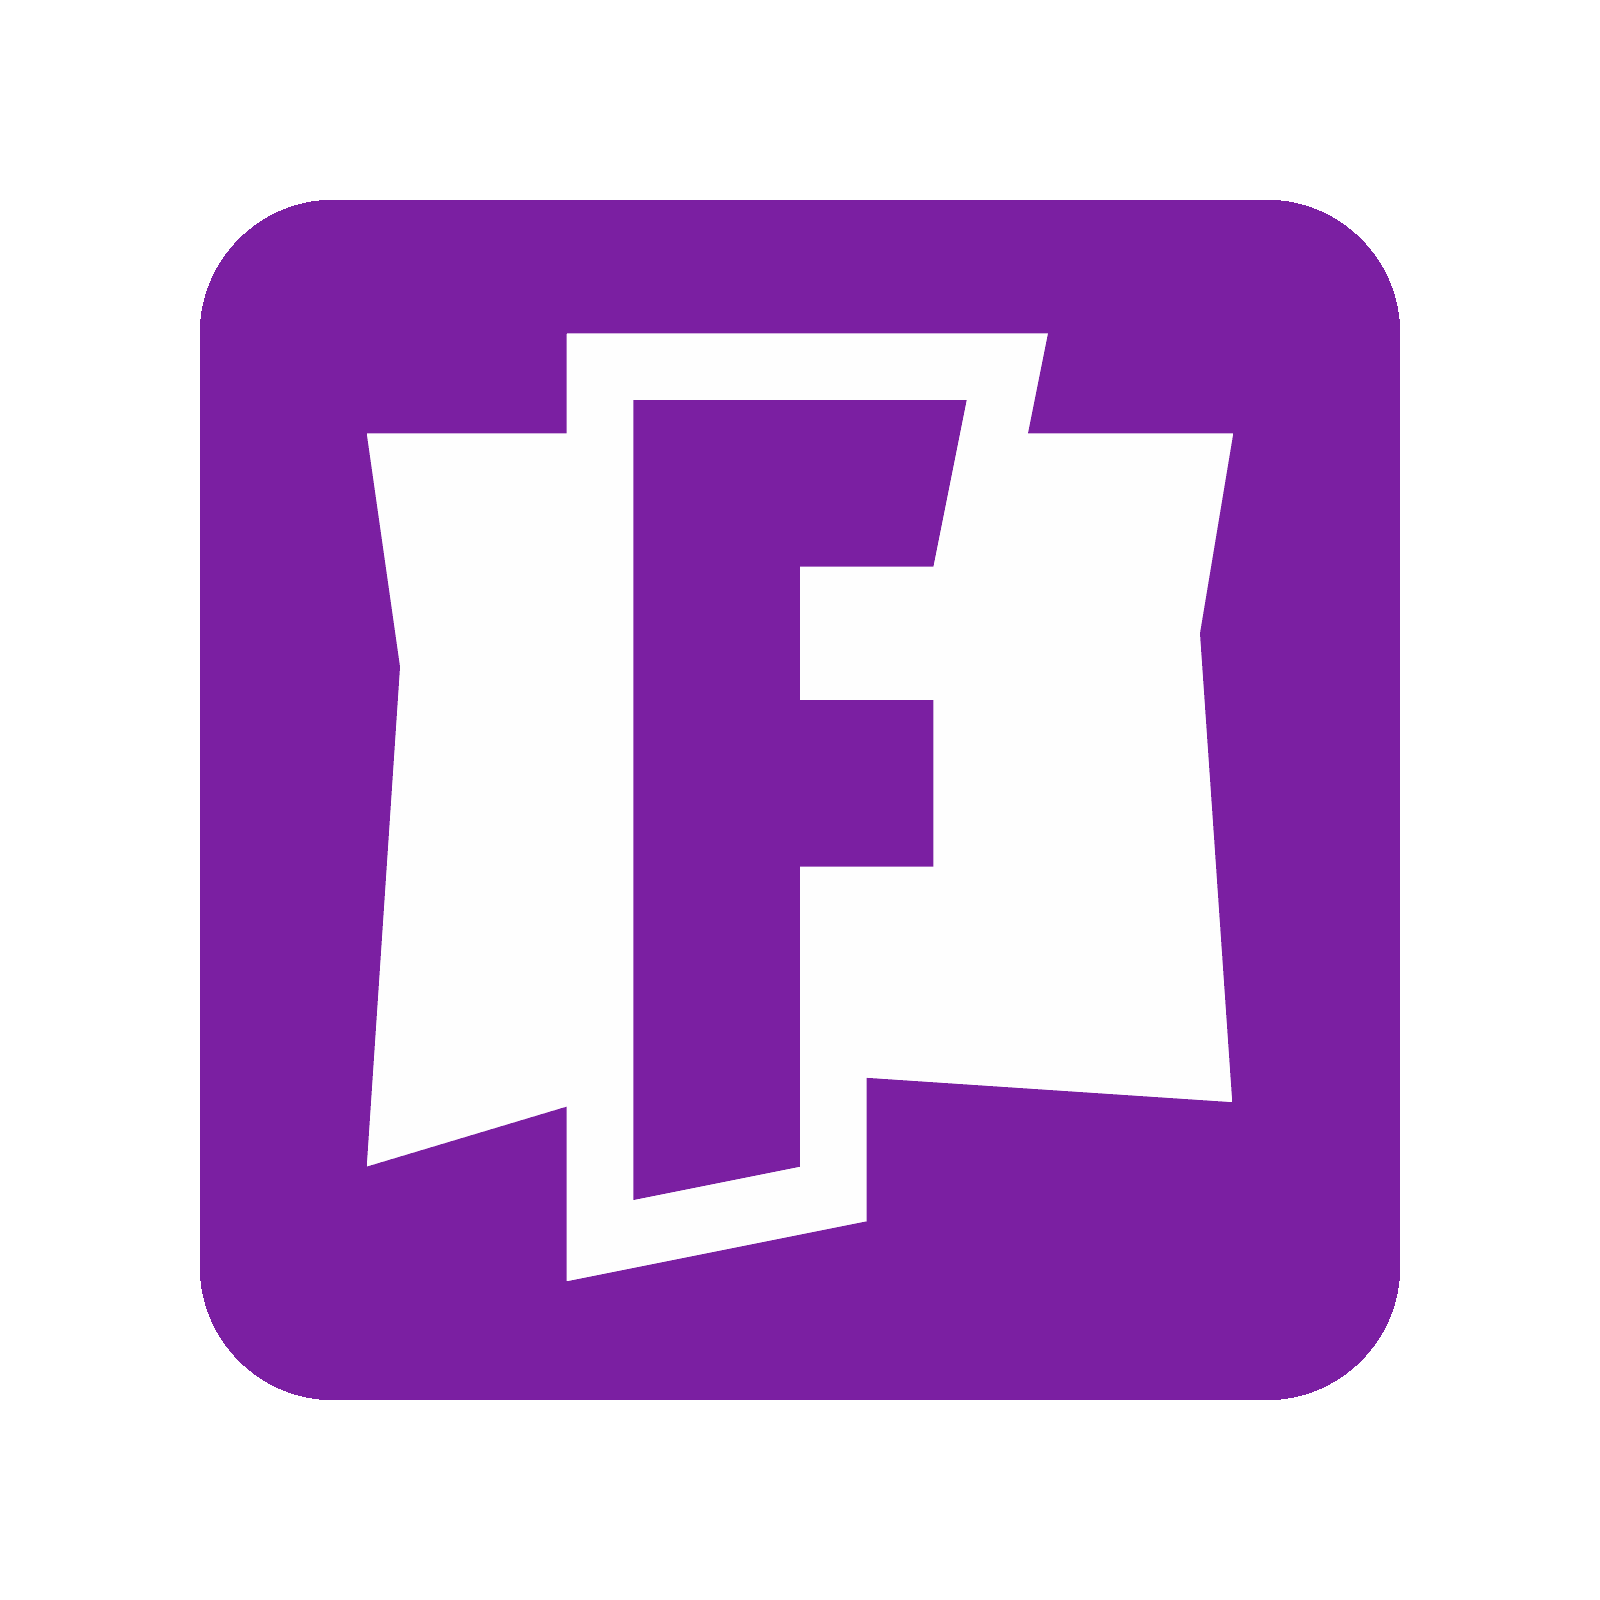 Fortnite Transparent Png Pictures Free Icons And Png Backgrounds